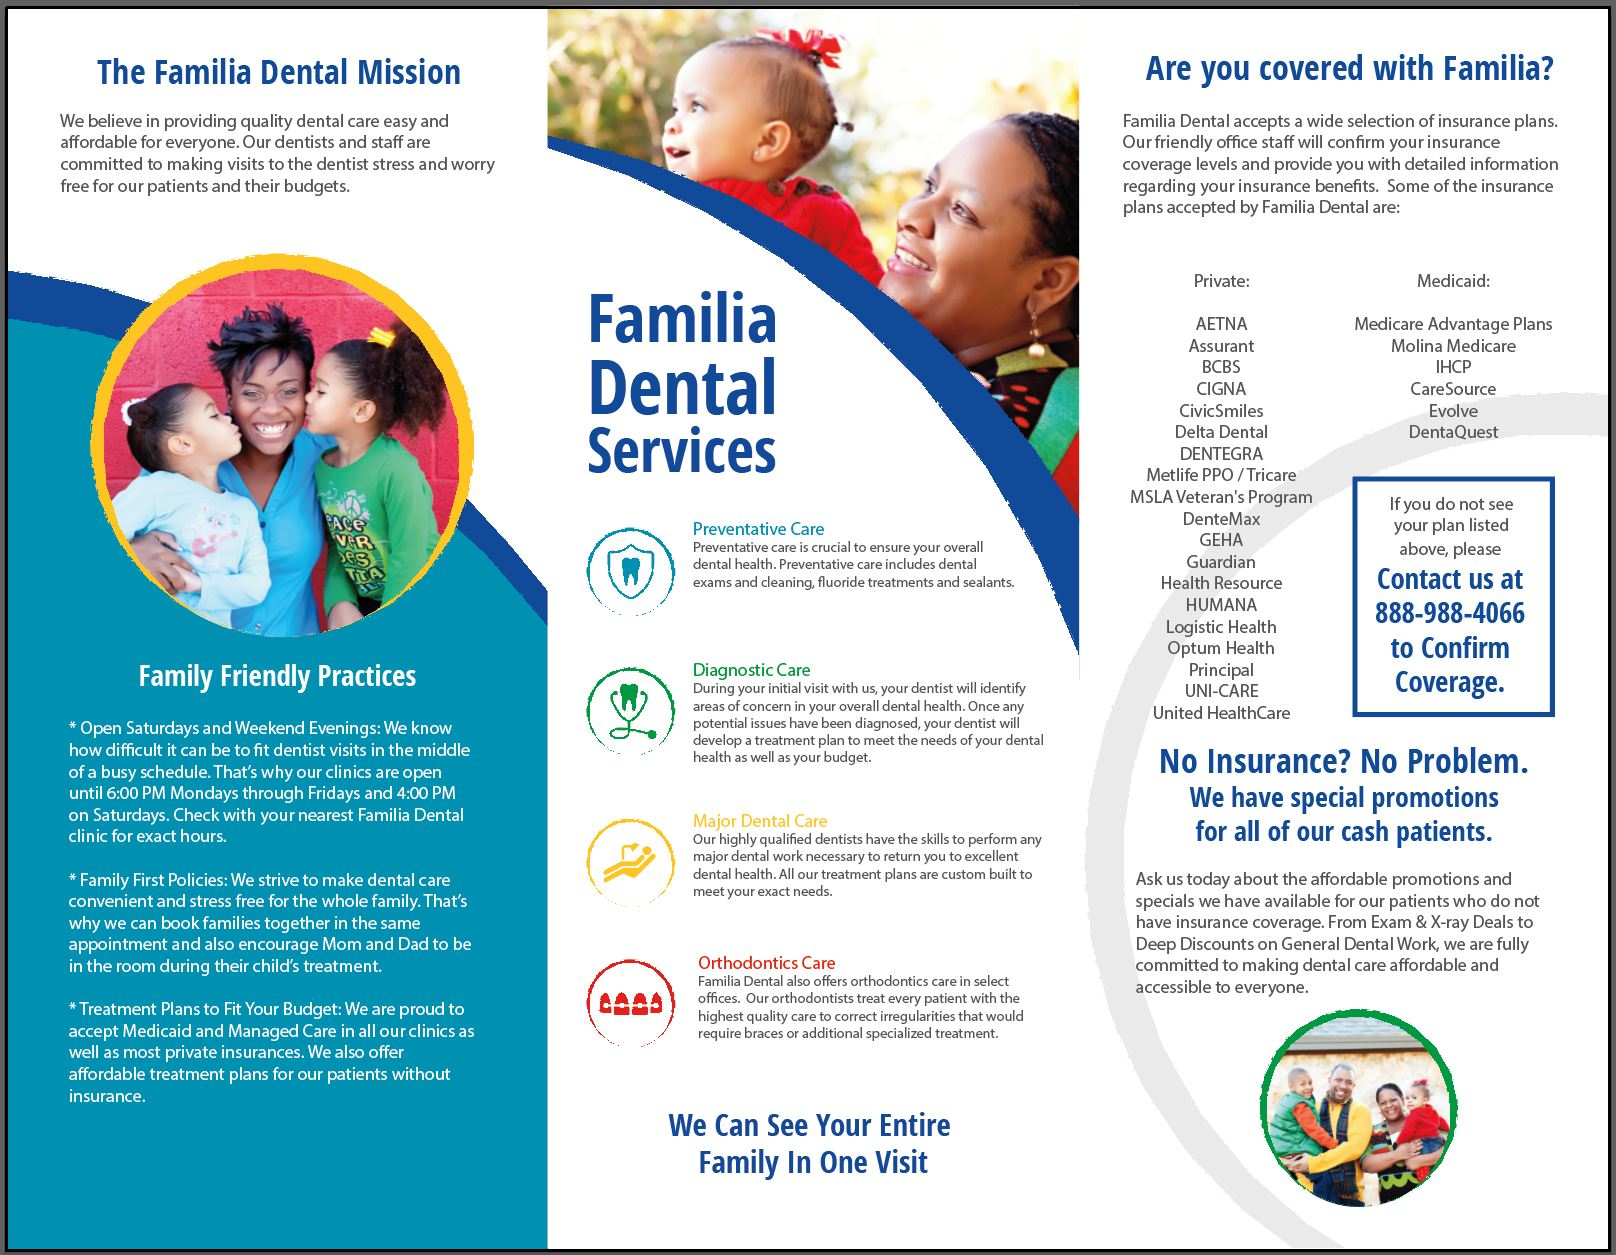 Save hundreds on dental for yourself or your family familia dental want to talk to someone call our customer service to talk through benefits solutioingenieria Image collections